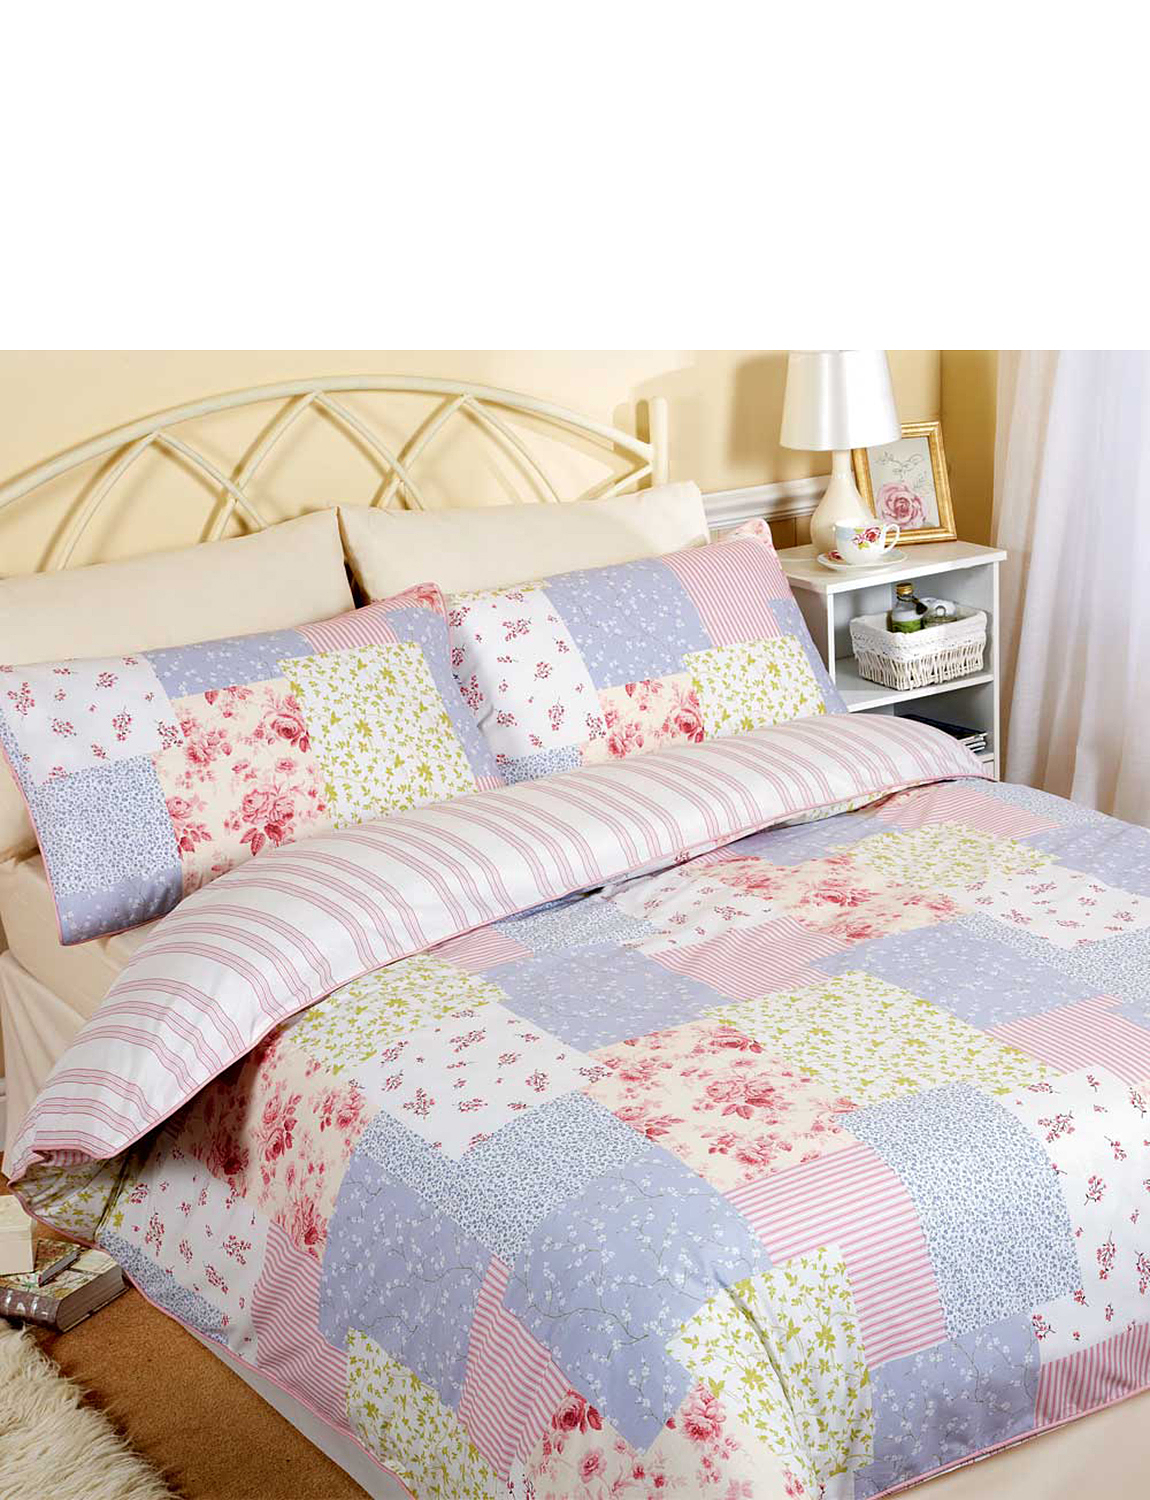 Catherine Vintage Patchwork Quilt Cover Amp Pillowcase Set